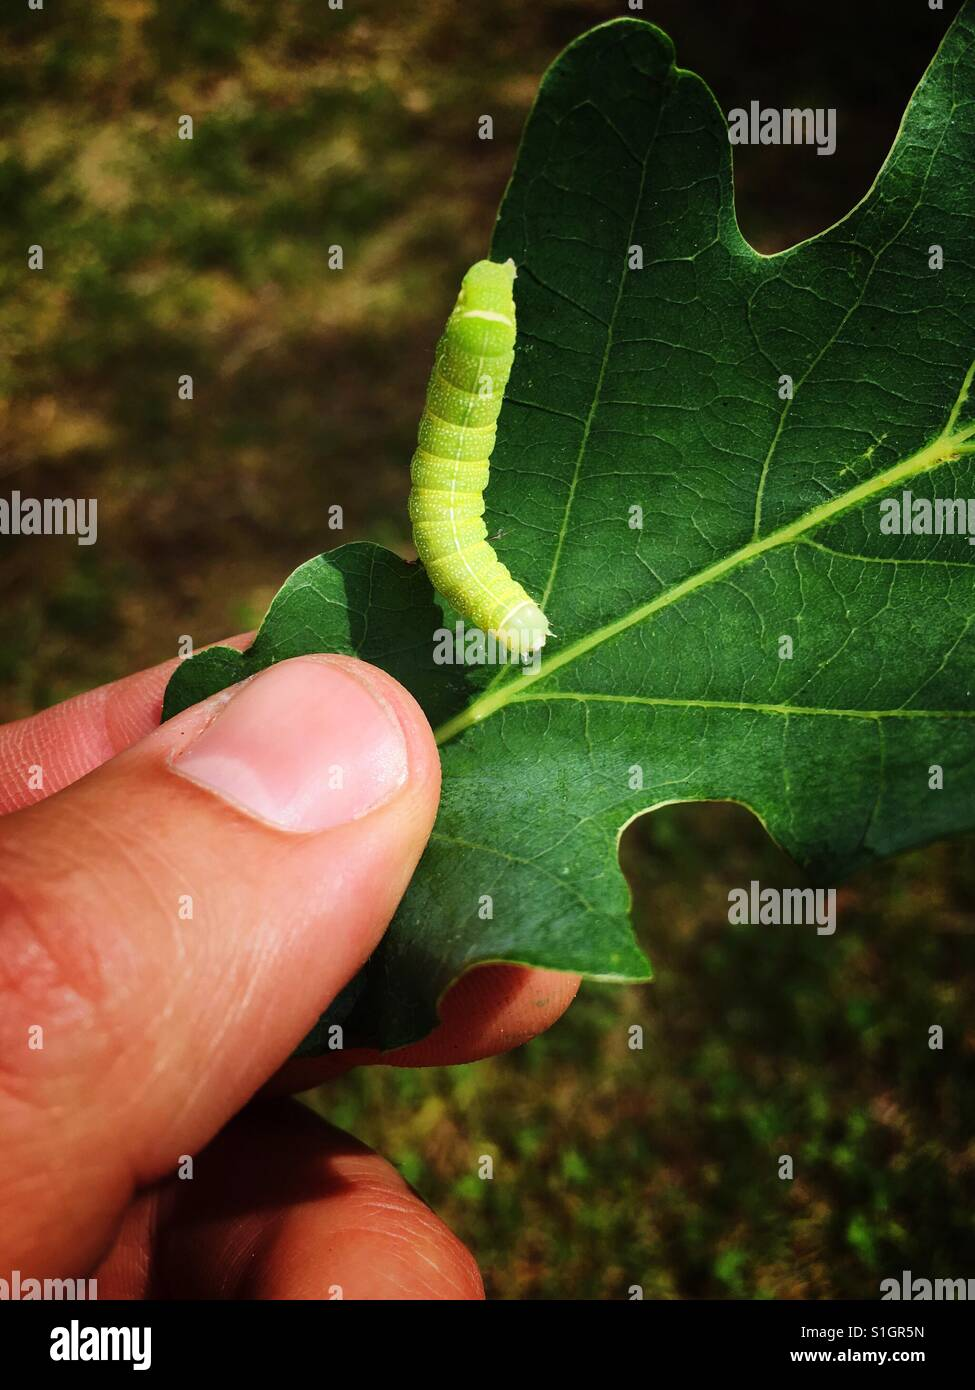 Caterpillar of operophtera brumata on an oak leaf in a man's hand - Stock Image